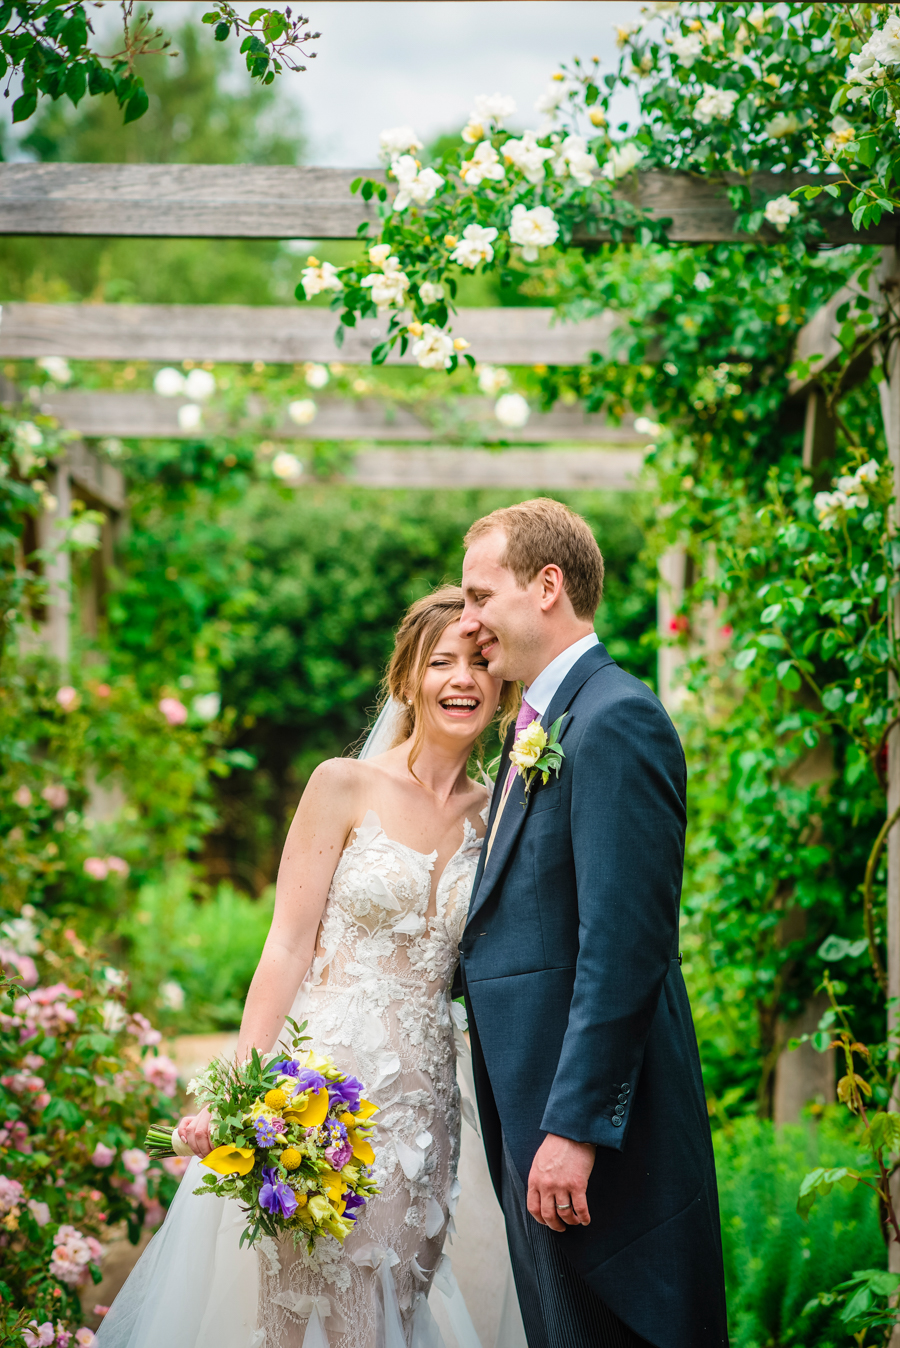 David and Valerie's gorgeous English garden wedding, with GK Photography (18)